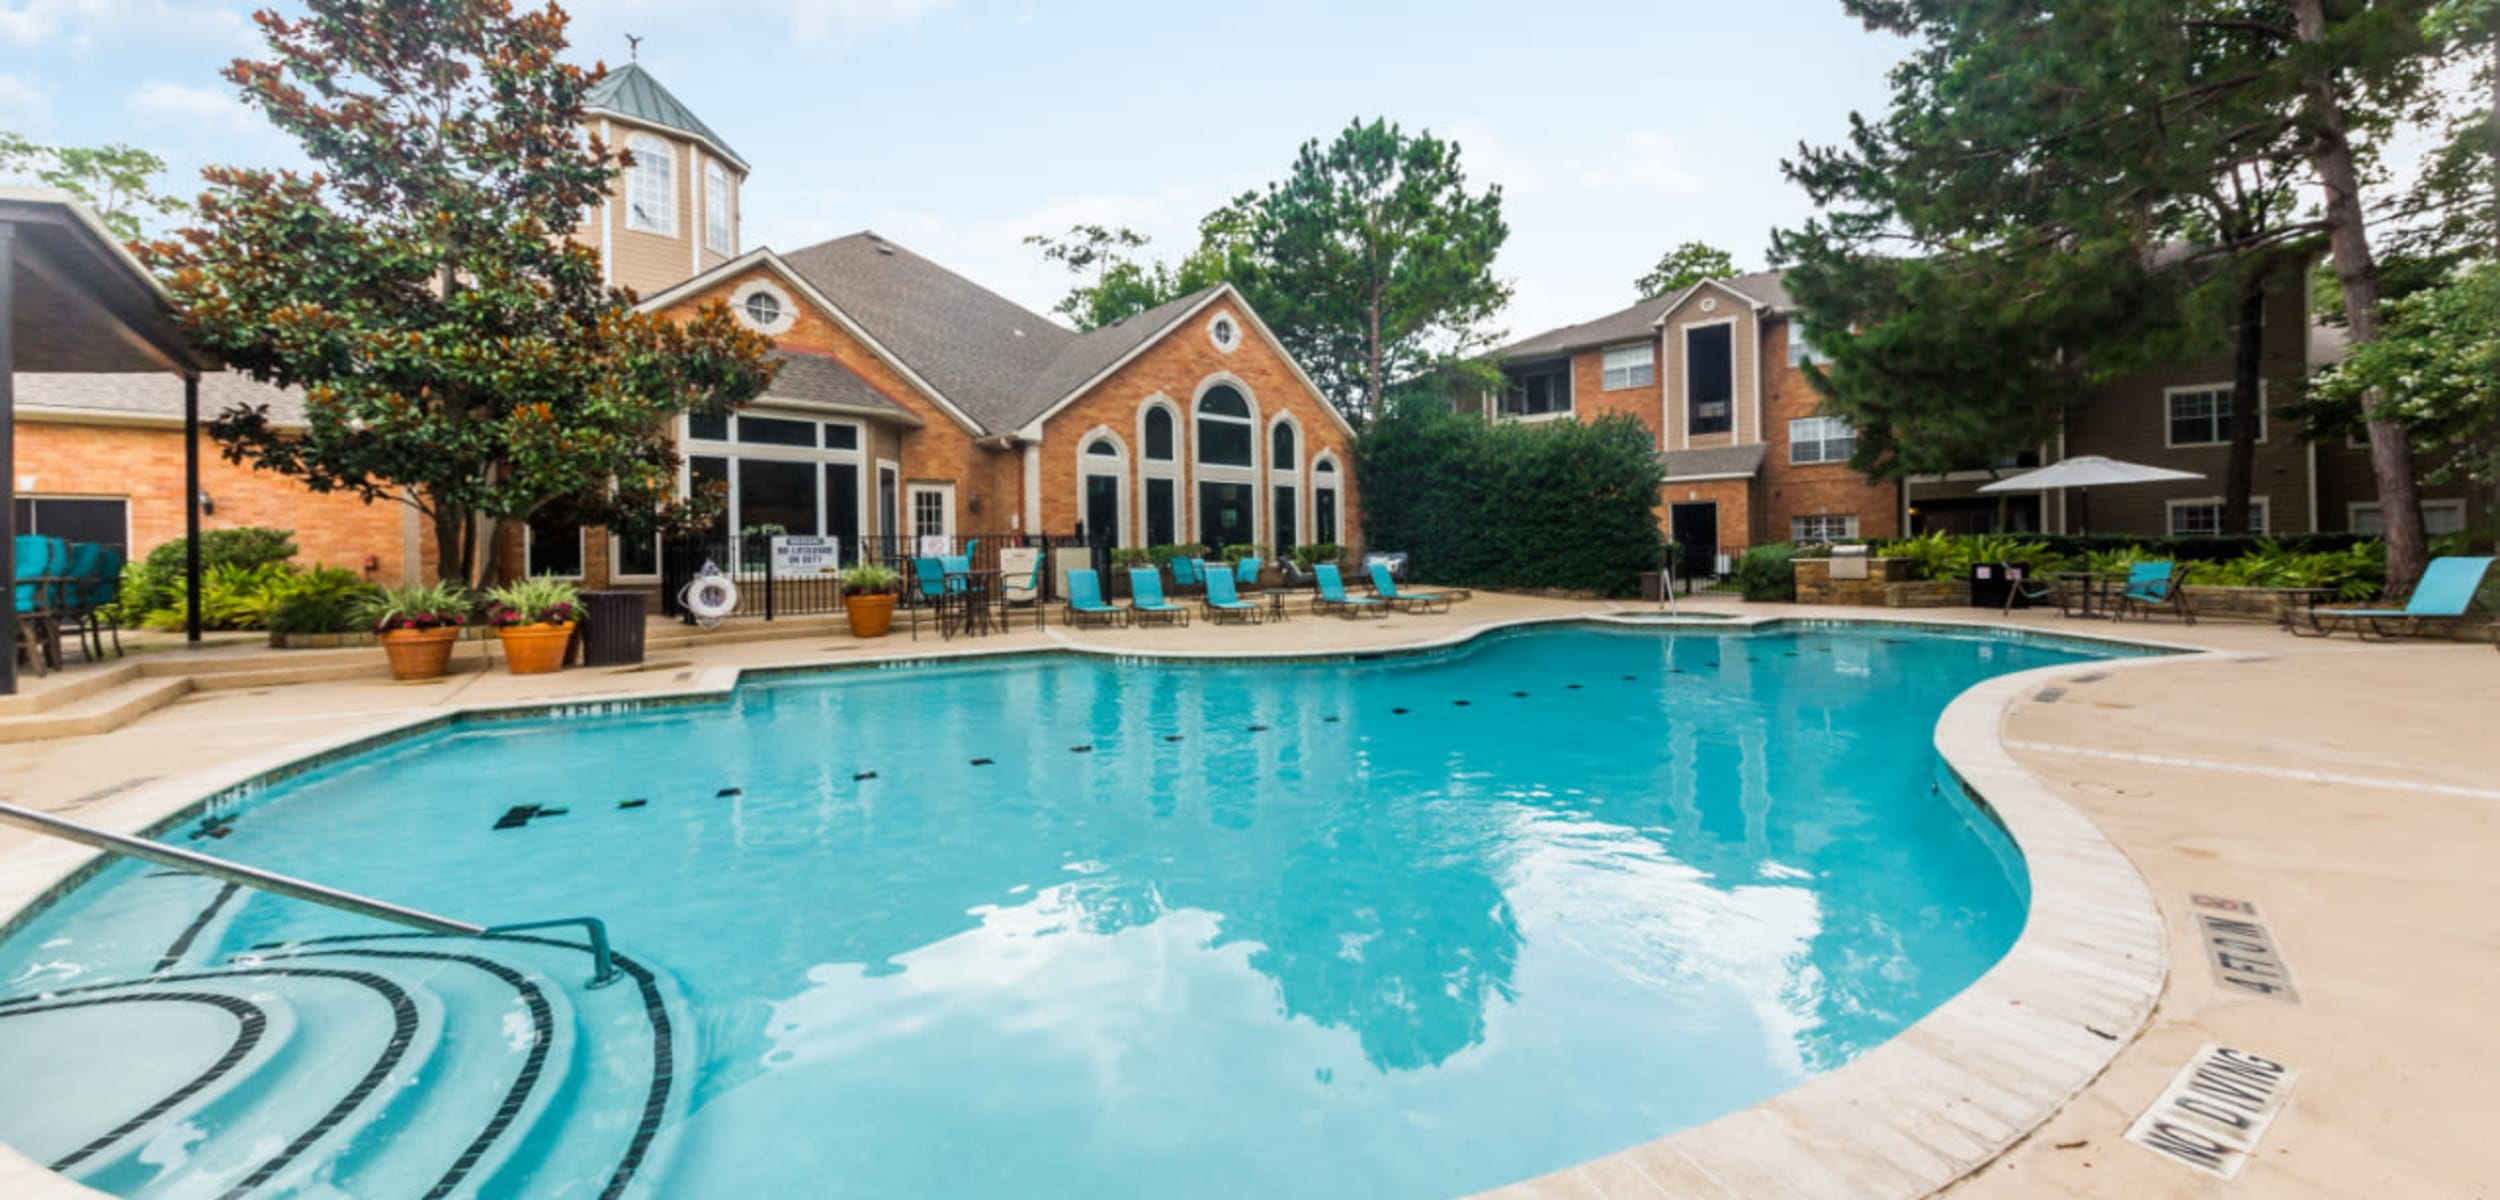 Steps into pool surrounded by lounge chairs at Marquis at Kingwood in Kingwood Texas,